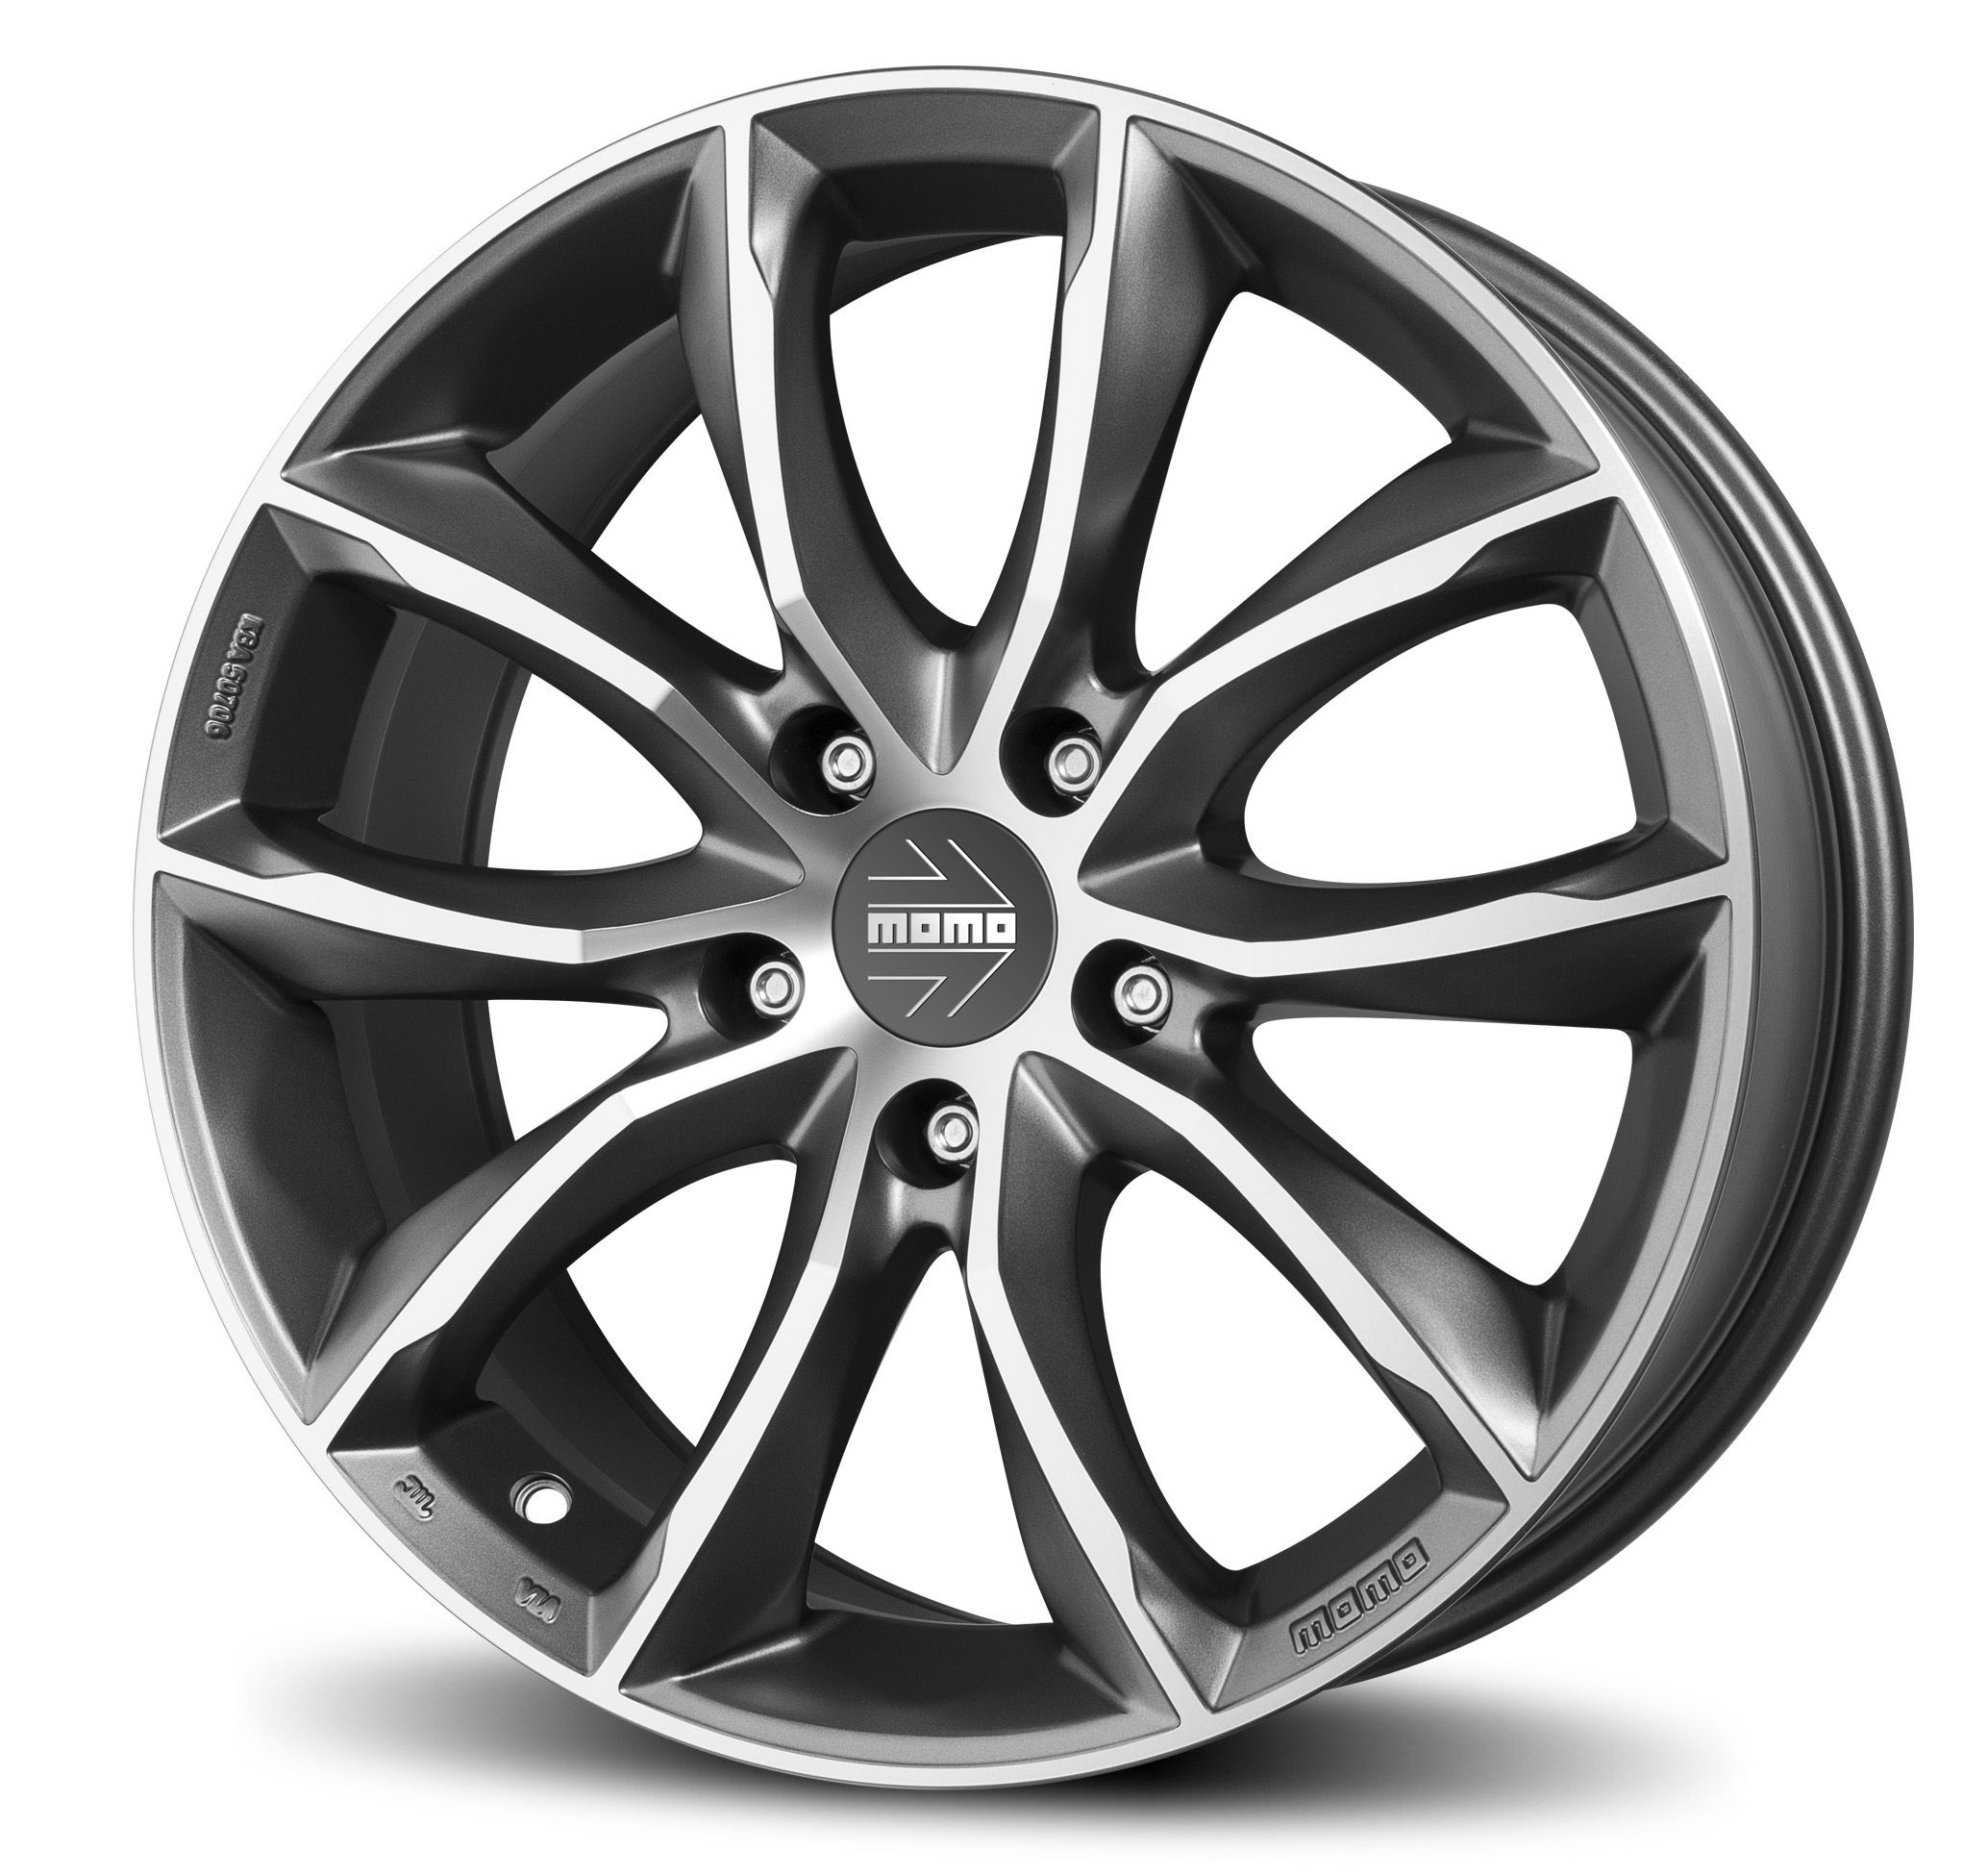 Rim Momo Scream Jet Evo 7,0 X 16 Et45 5X114,3 72,3 Matt Anthracite D. Cut Via